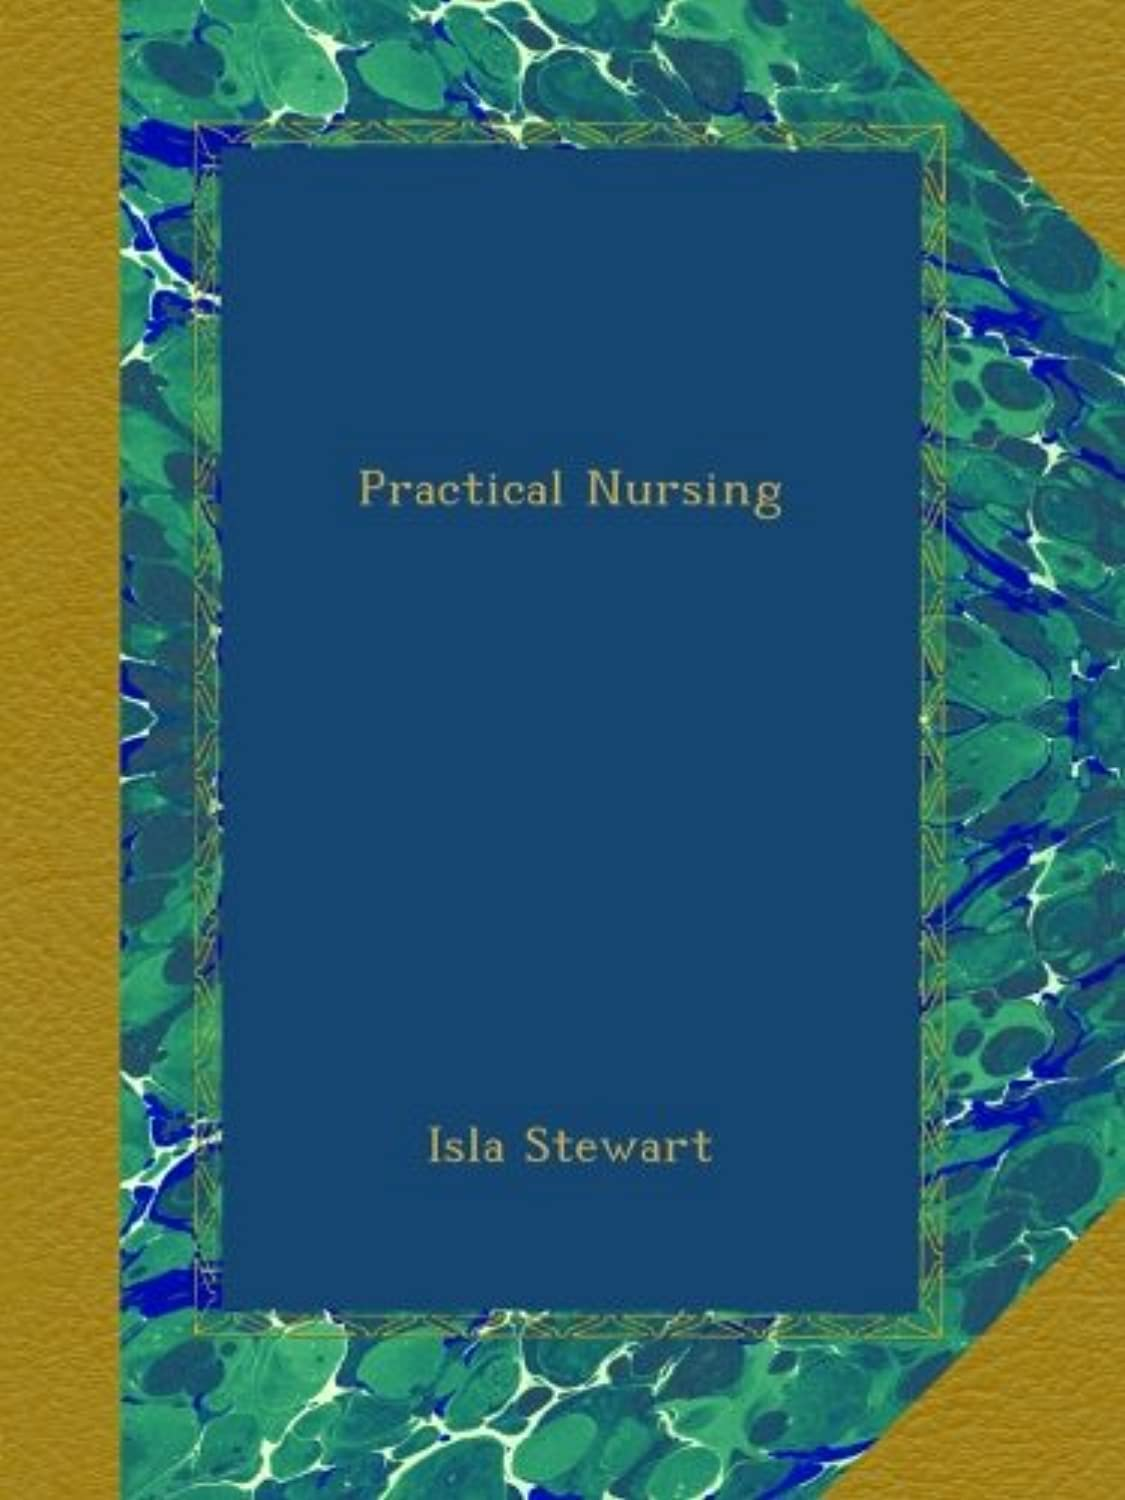 Practical Nursing